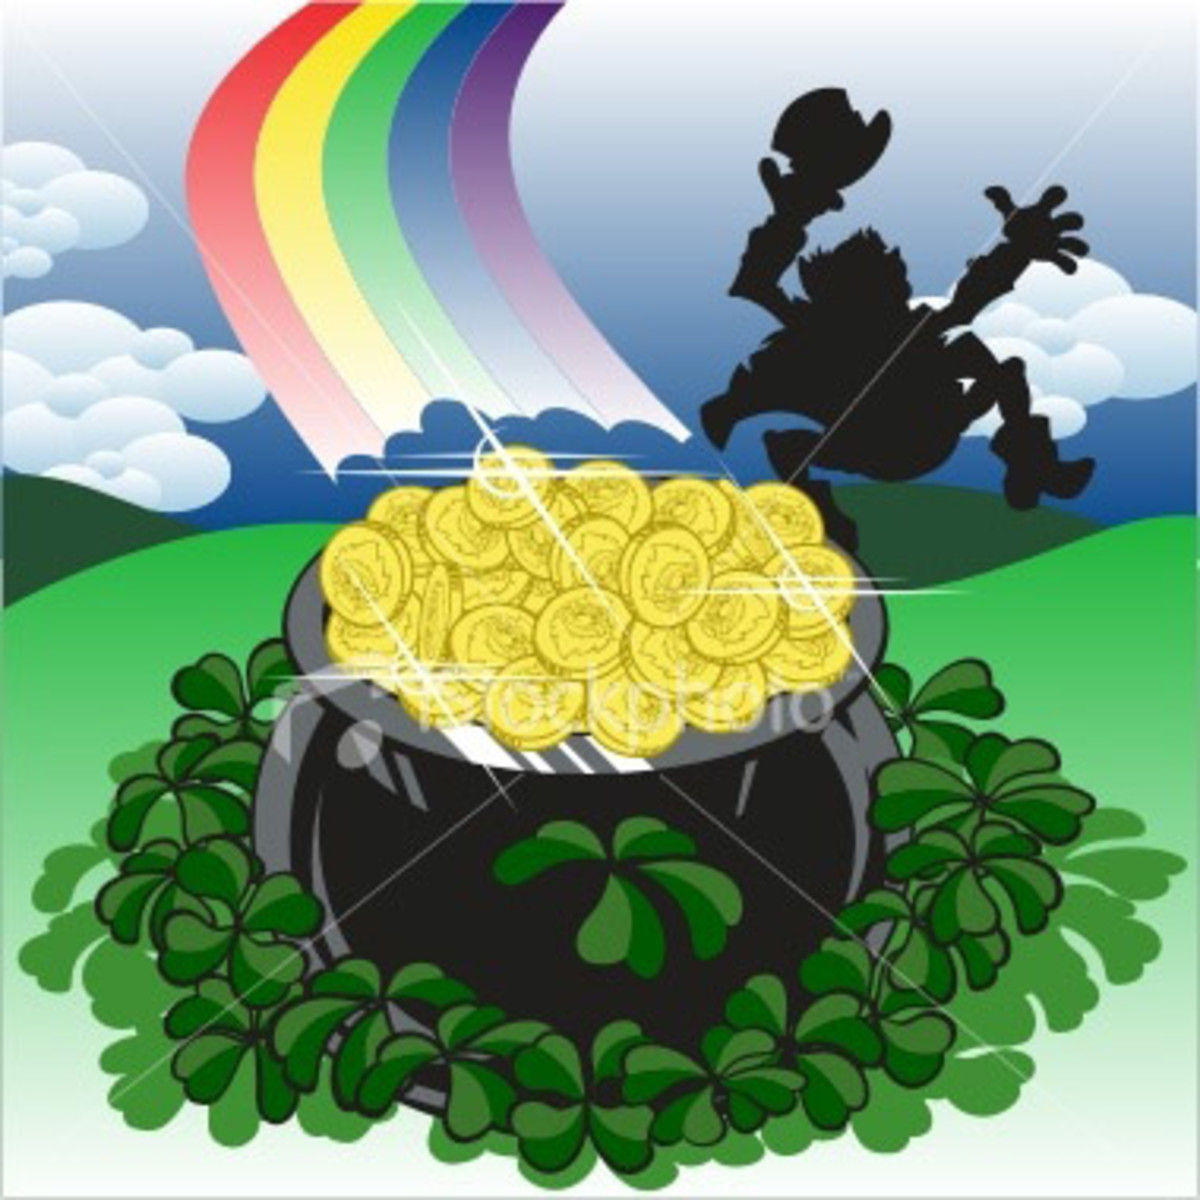 pot of gold irish legend